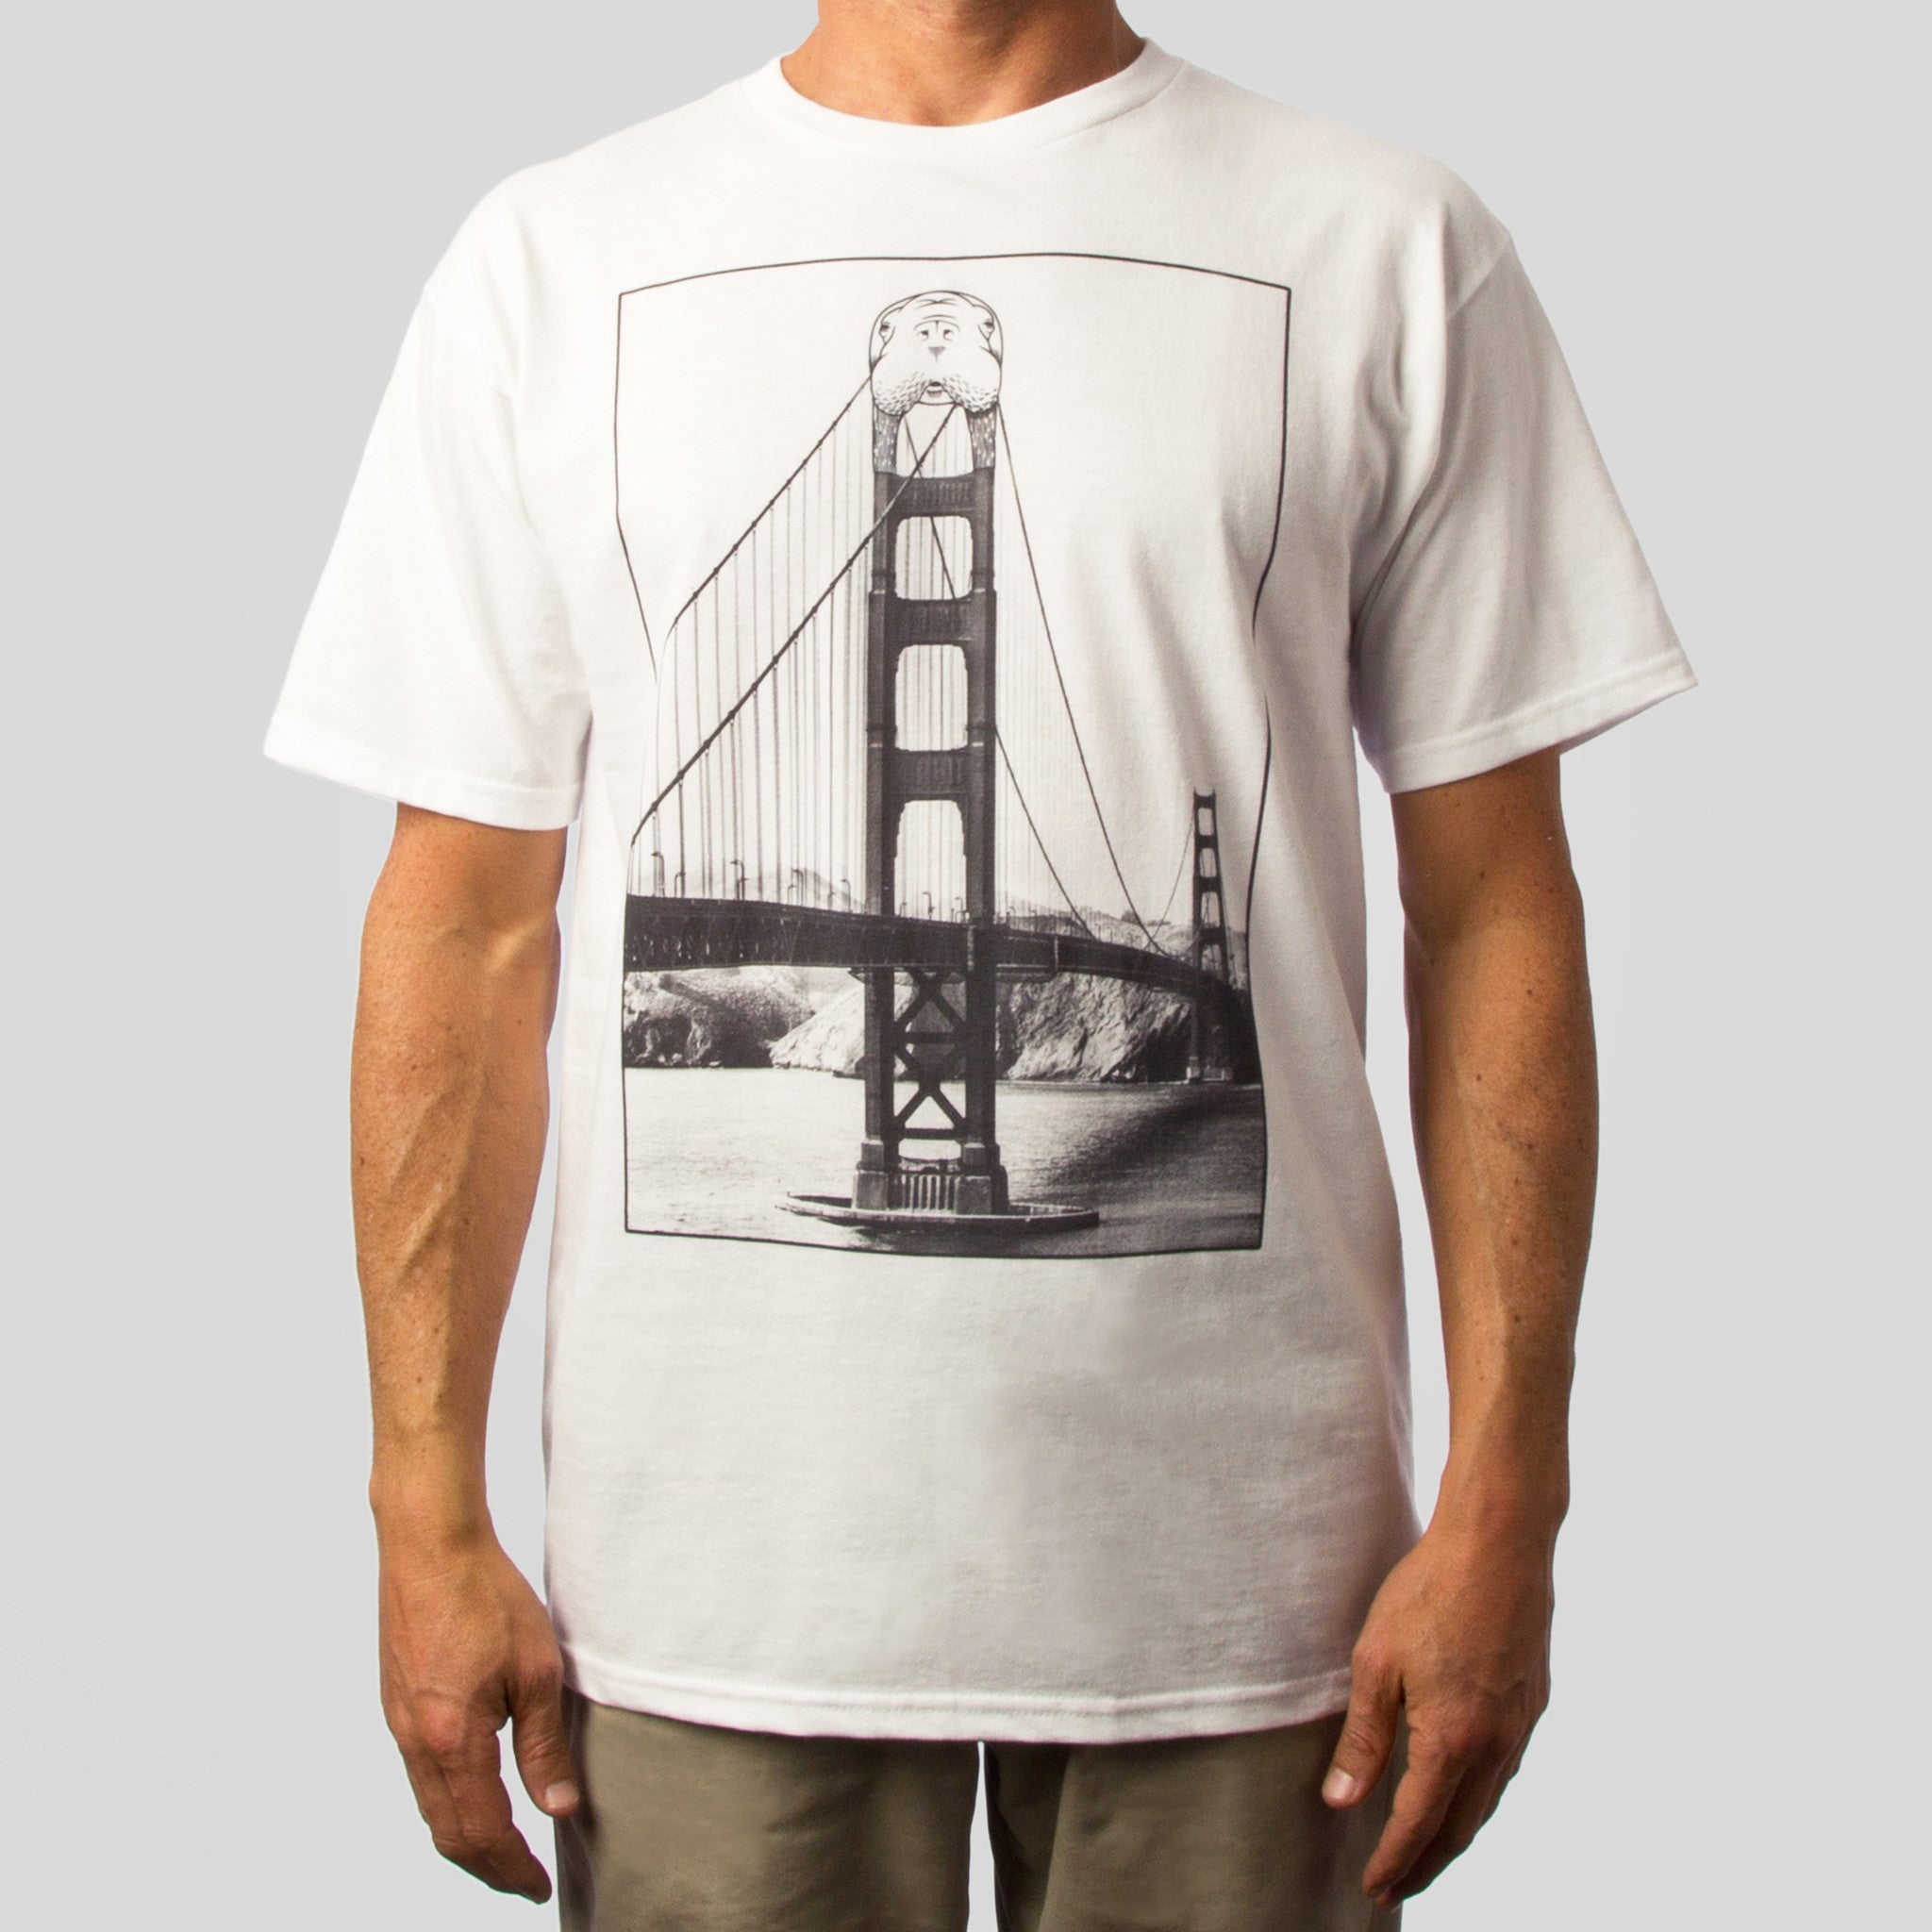 SuperFishal (Jeremy Fish) - Golden Tusk Bridge Men's Shirt, White - The Giant Peach - 1